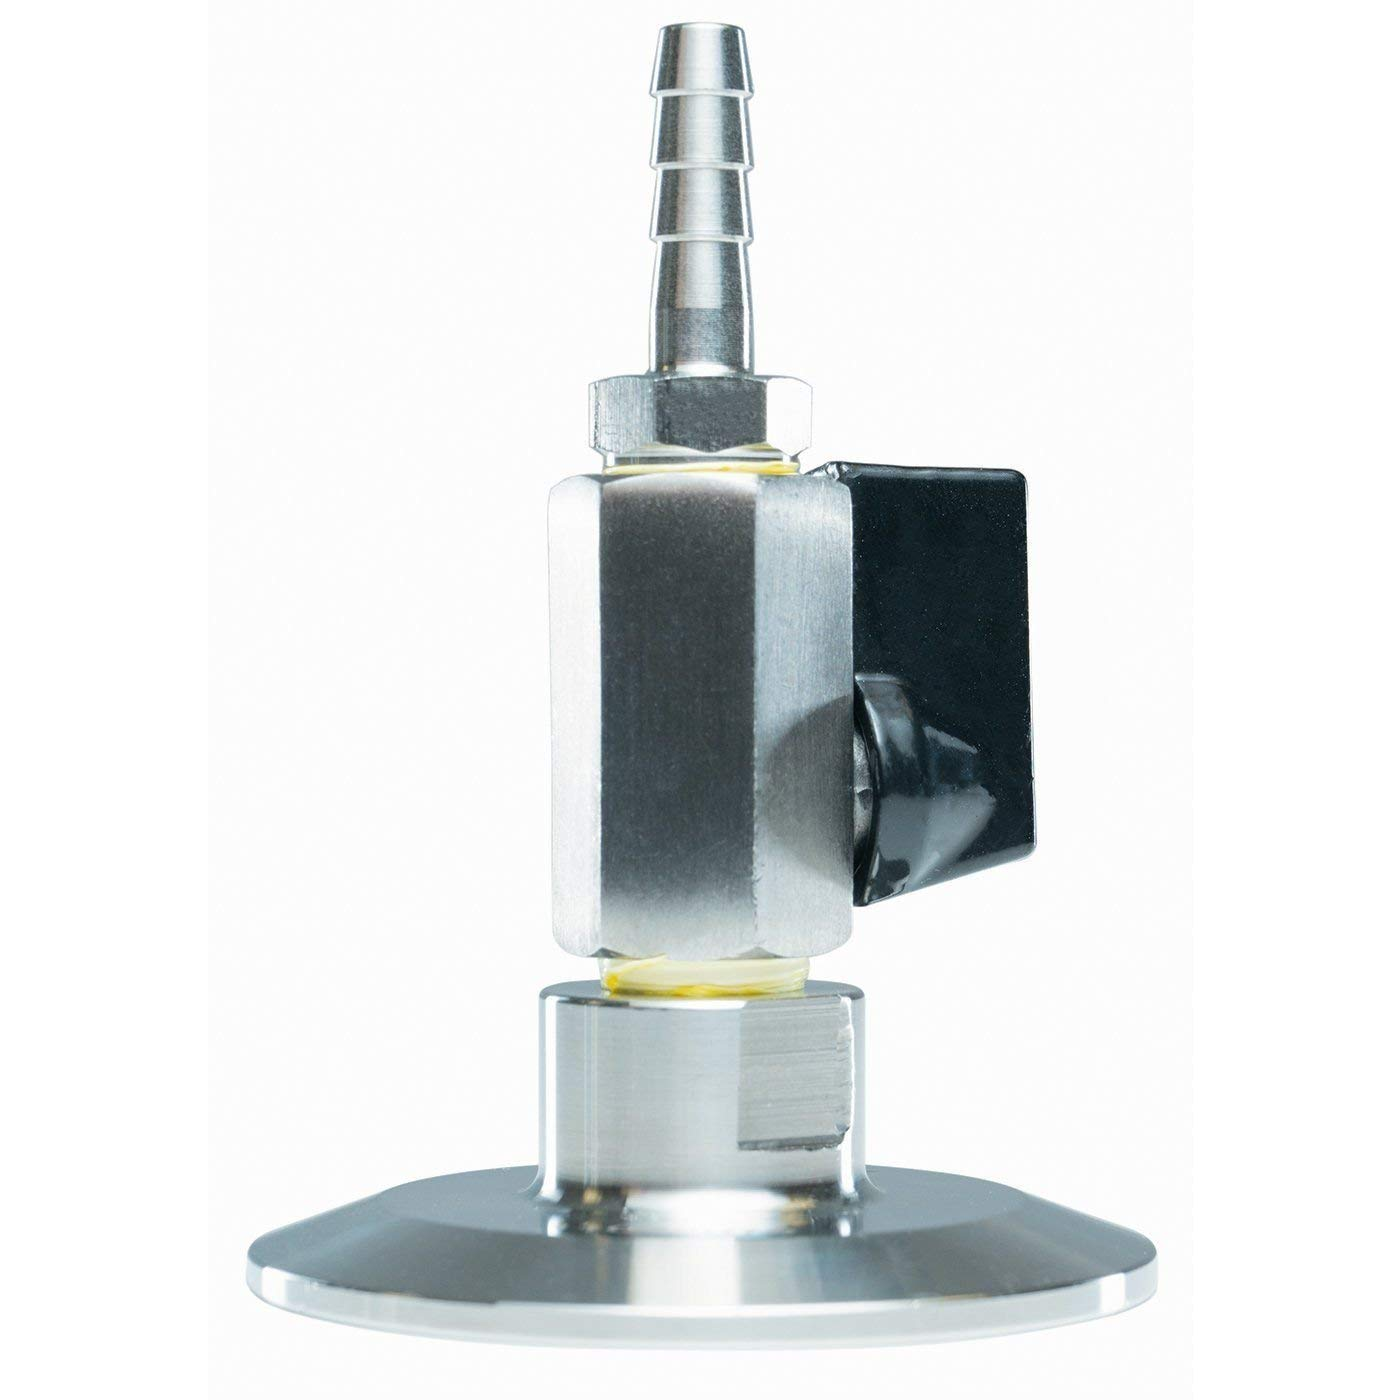 BVV 3 Inch Tri-Clamp Topcap with Valve and 1//4 37 Degree JIC Flare